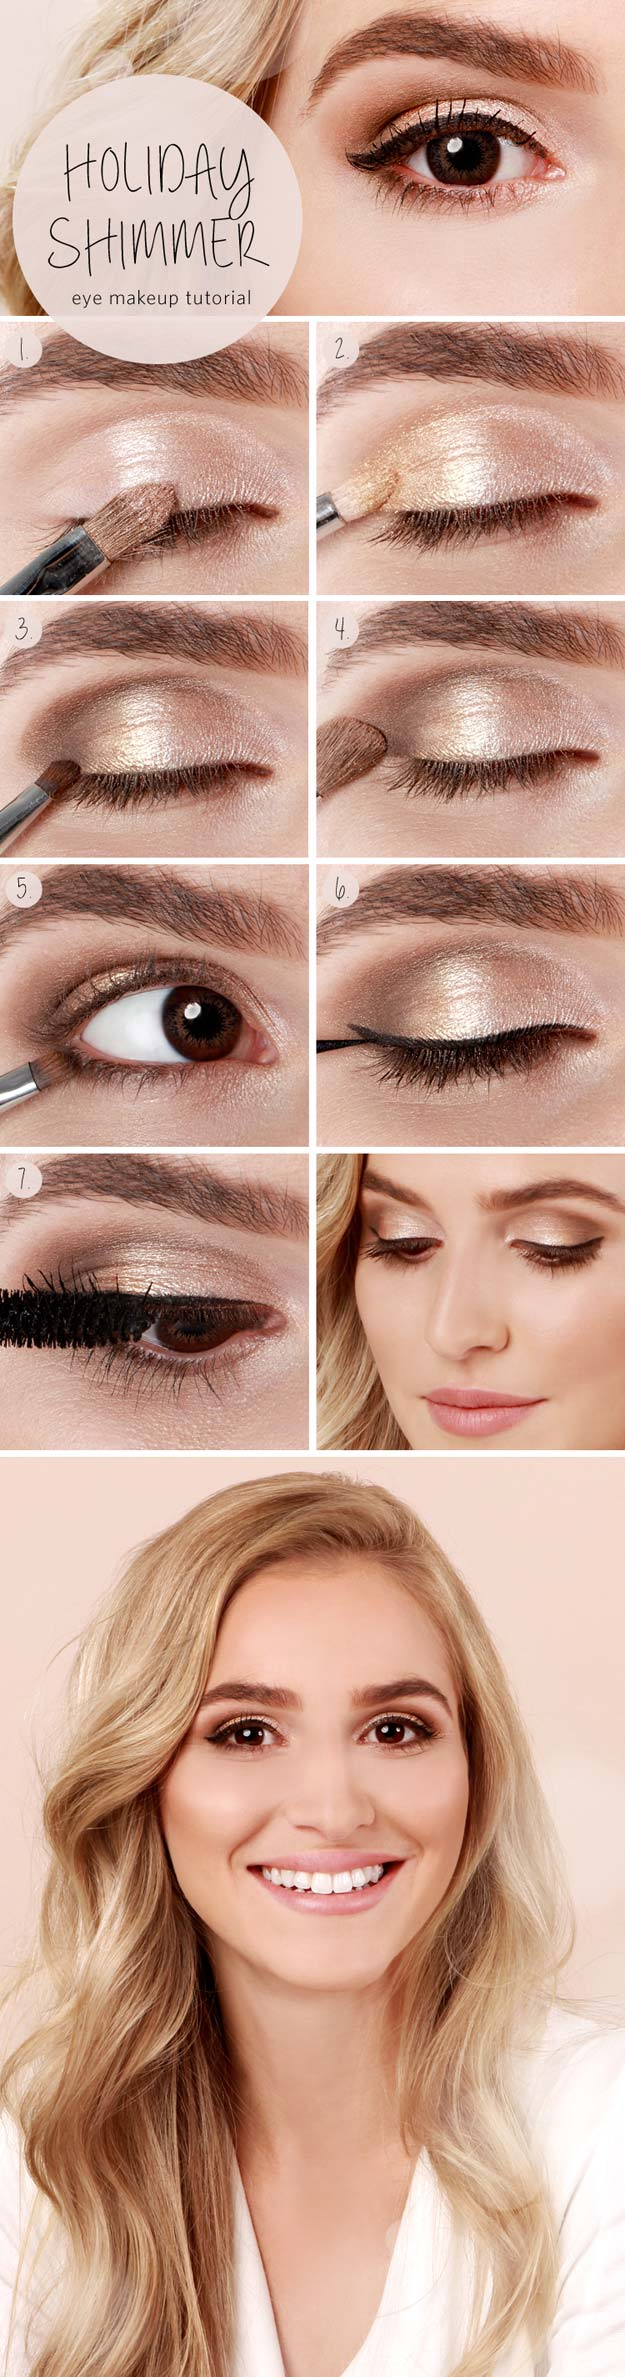 24 cool makeup tutorials for teens best makeup tutorials for teens holiday shimmer eye tutorial easy makeup ideas for beginners baditri Gallery